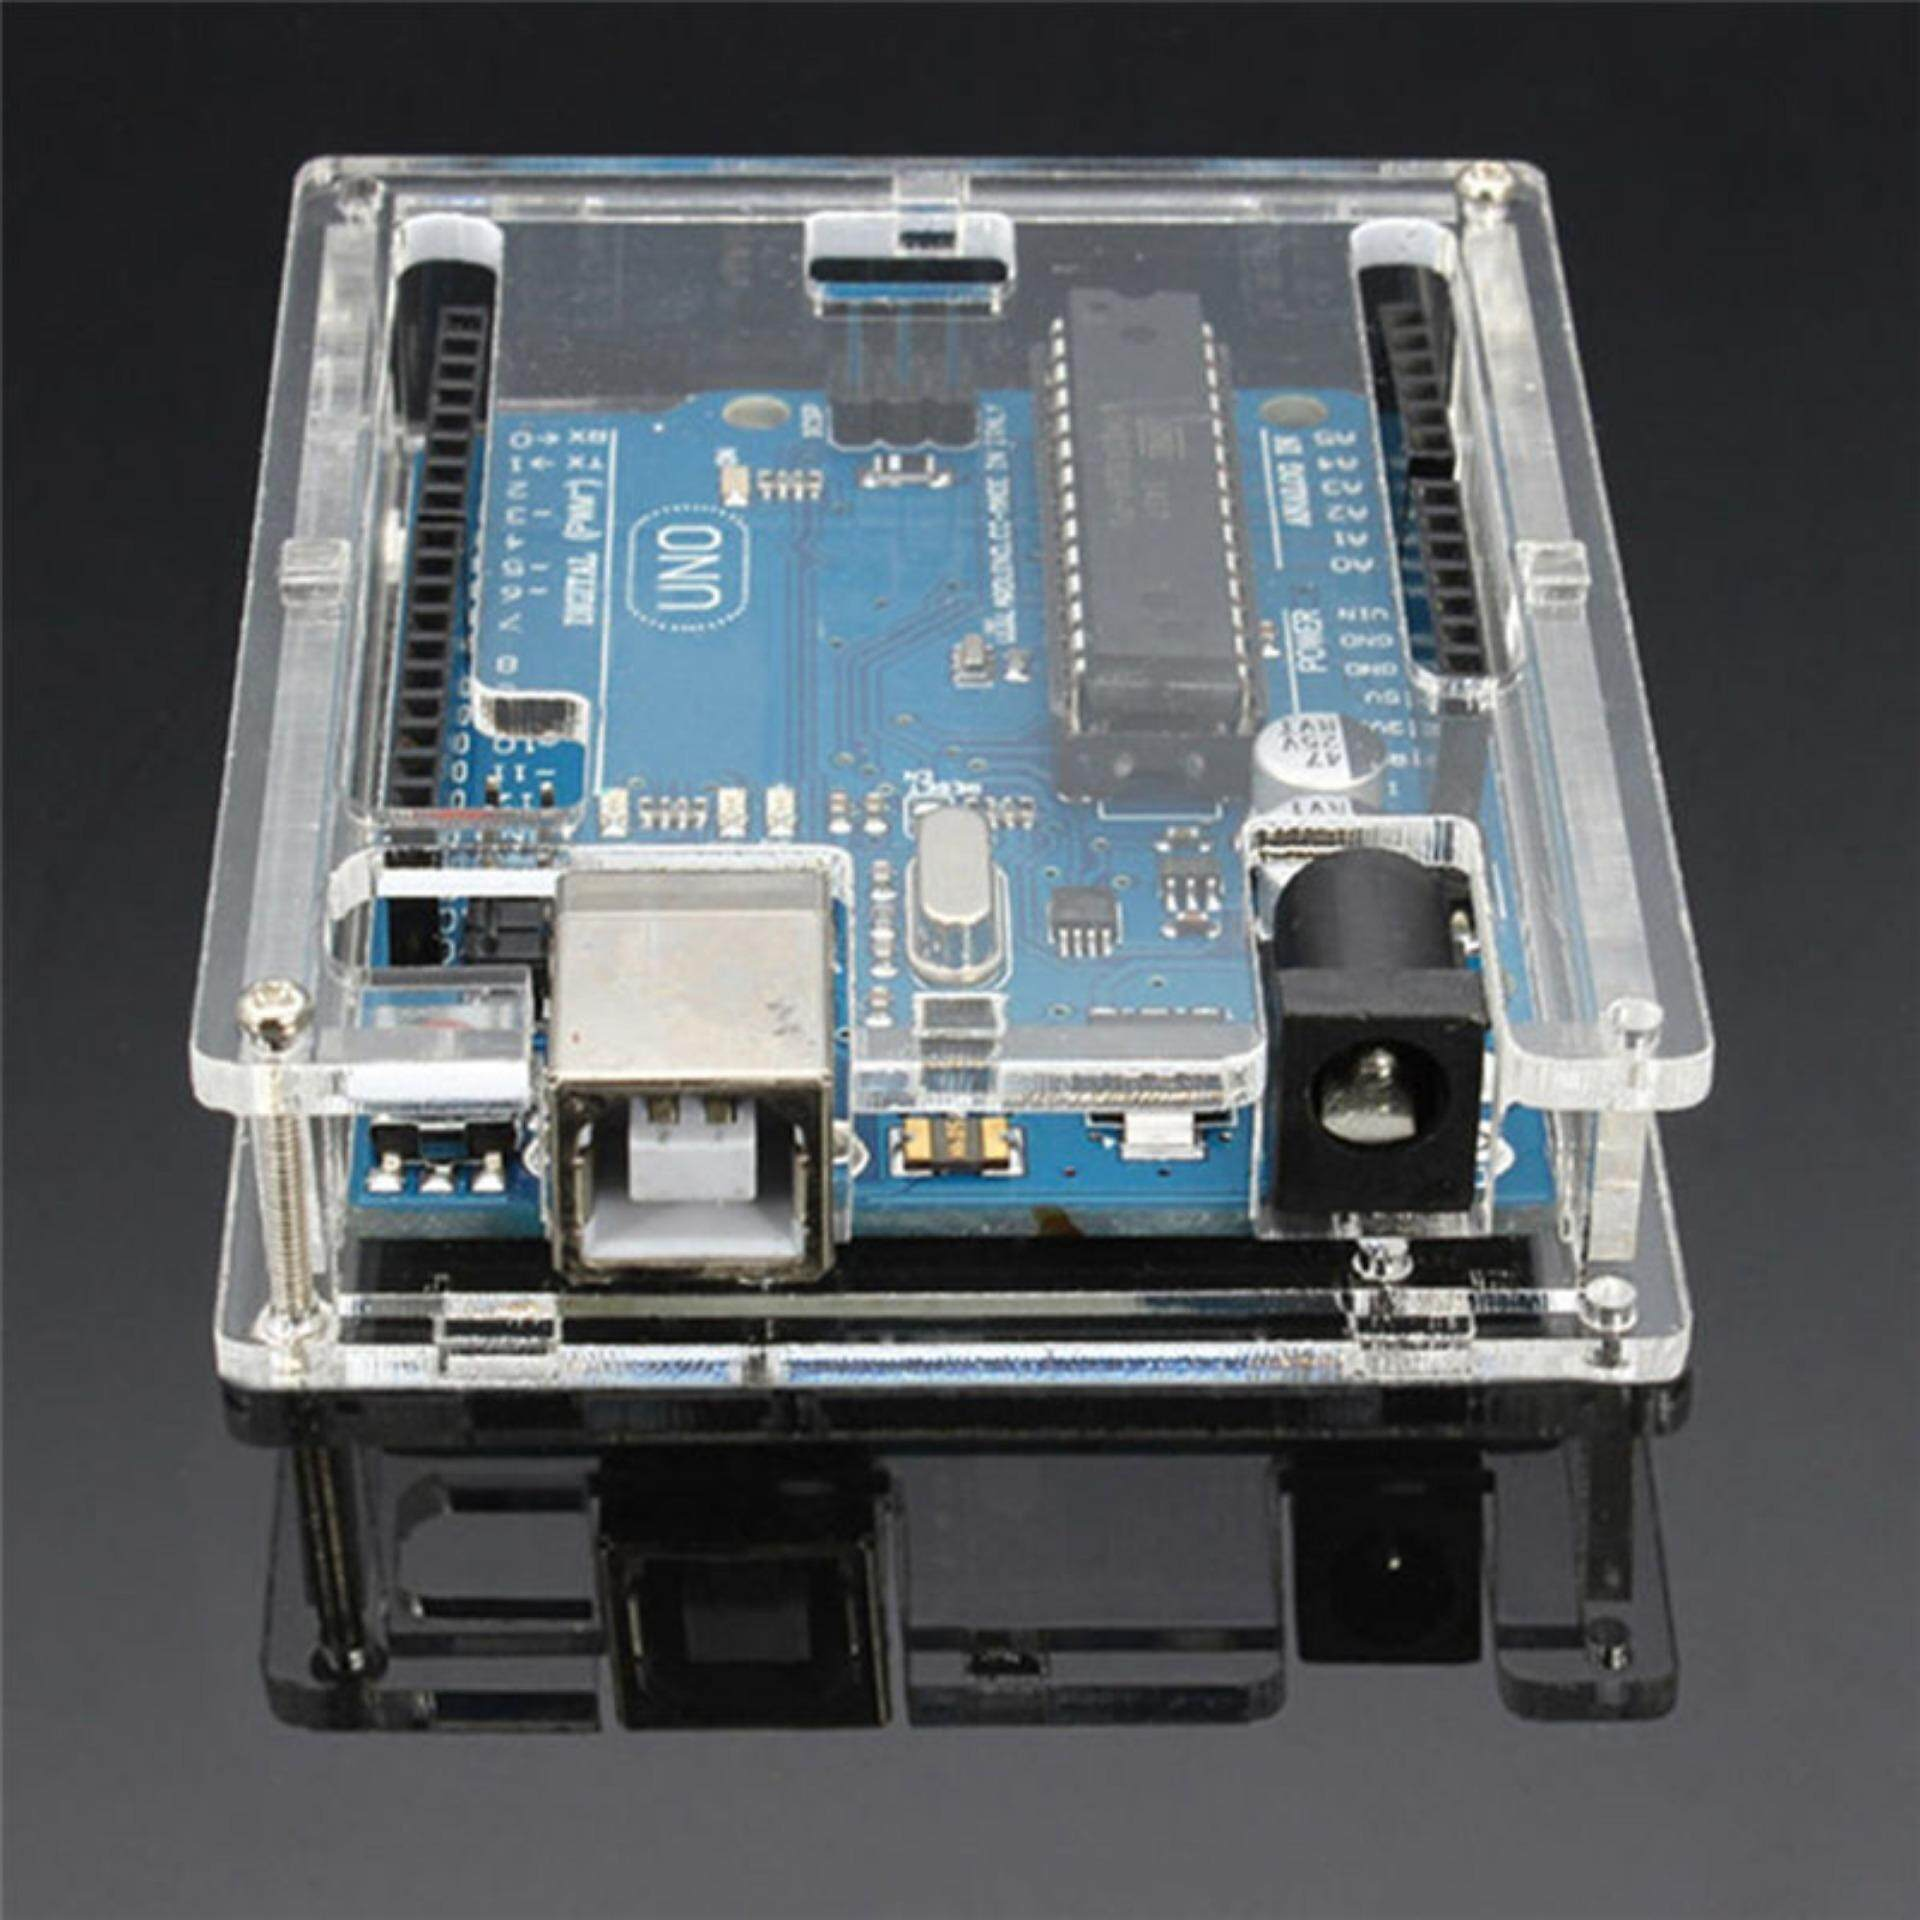 Transparent Case Acrylic Cover Shell Enclosure Computer Box For Arduino UNO R3 Transparent Malaysia